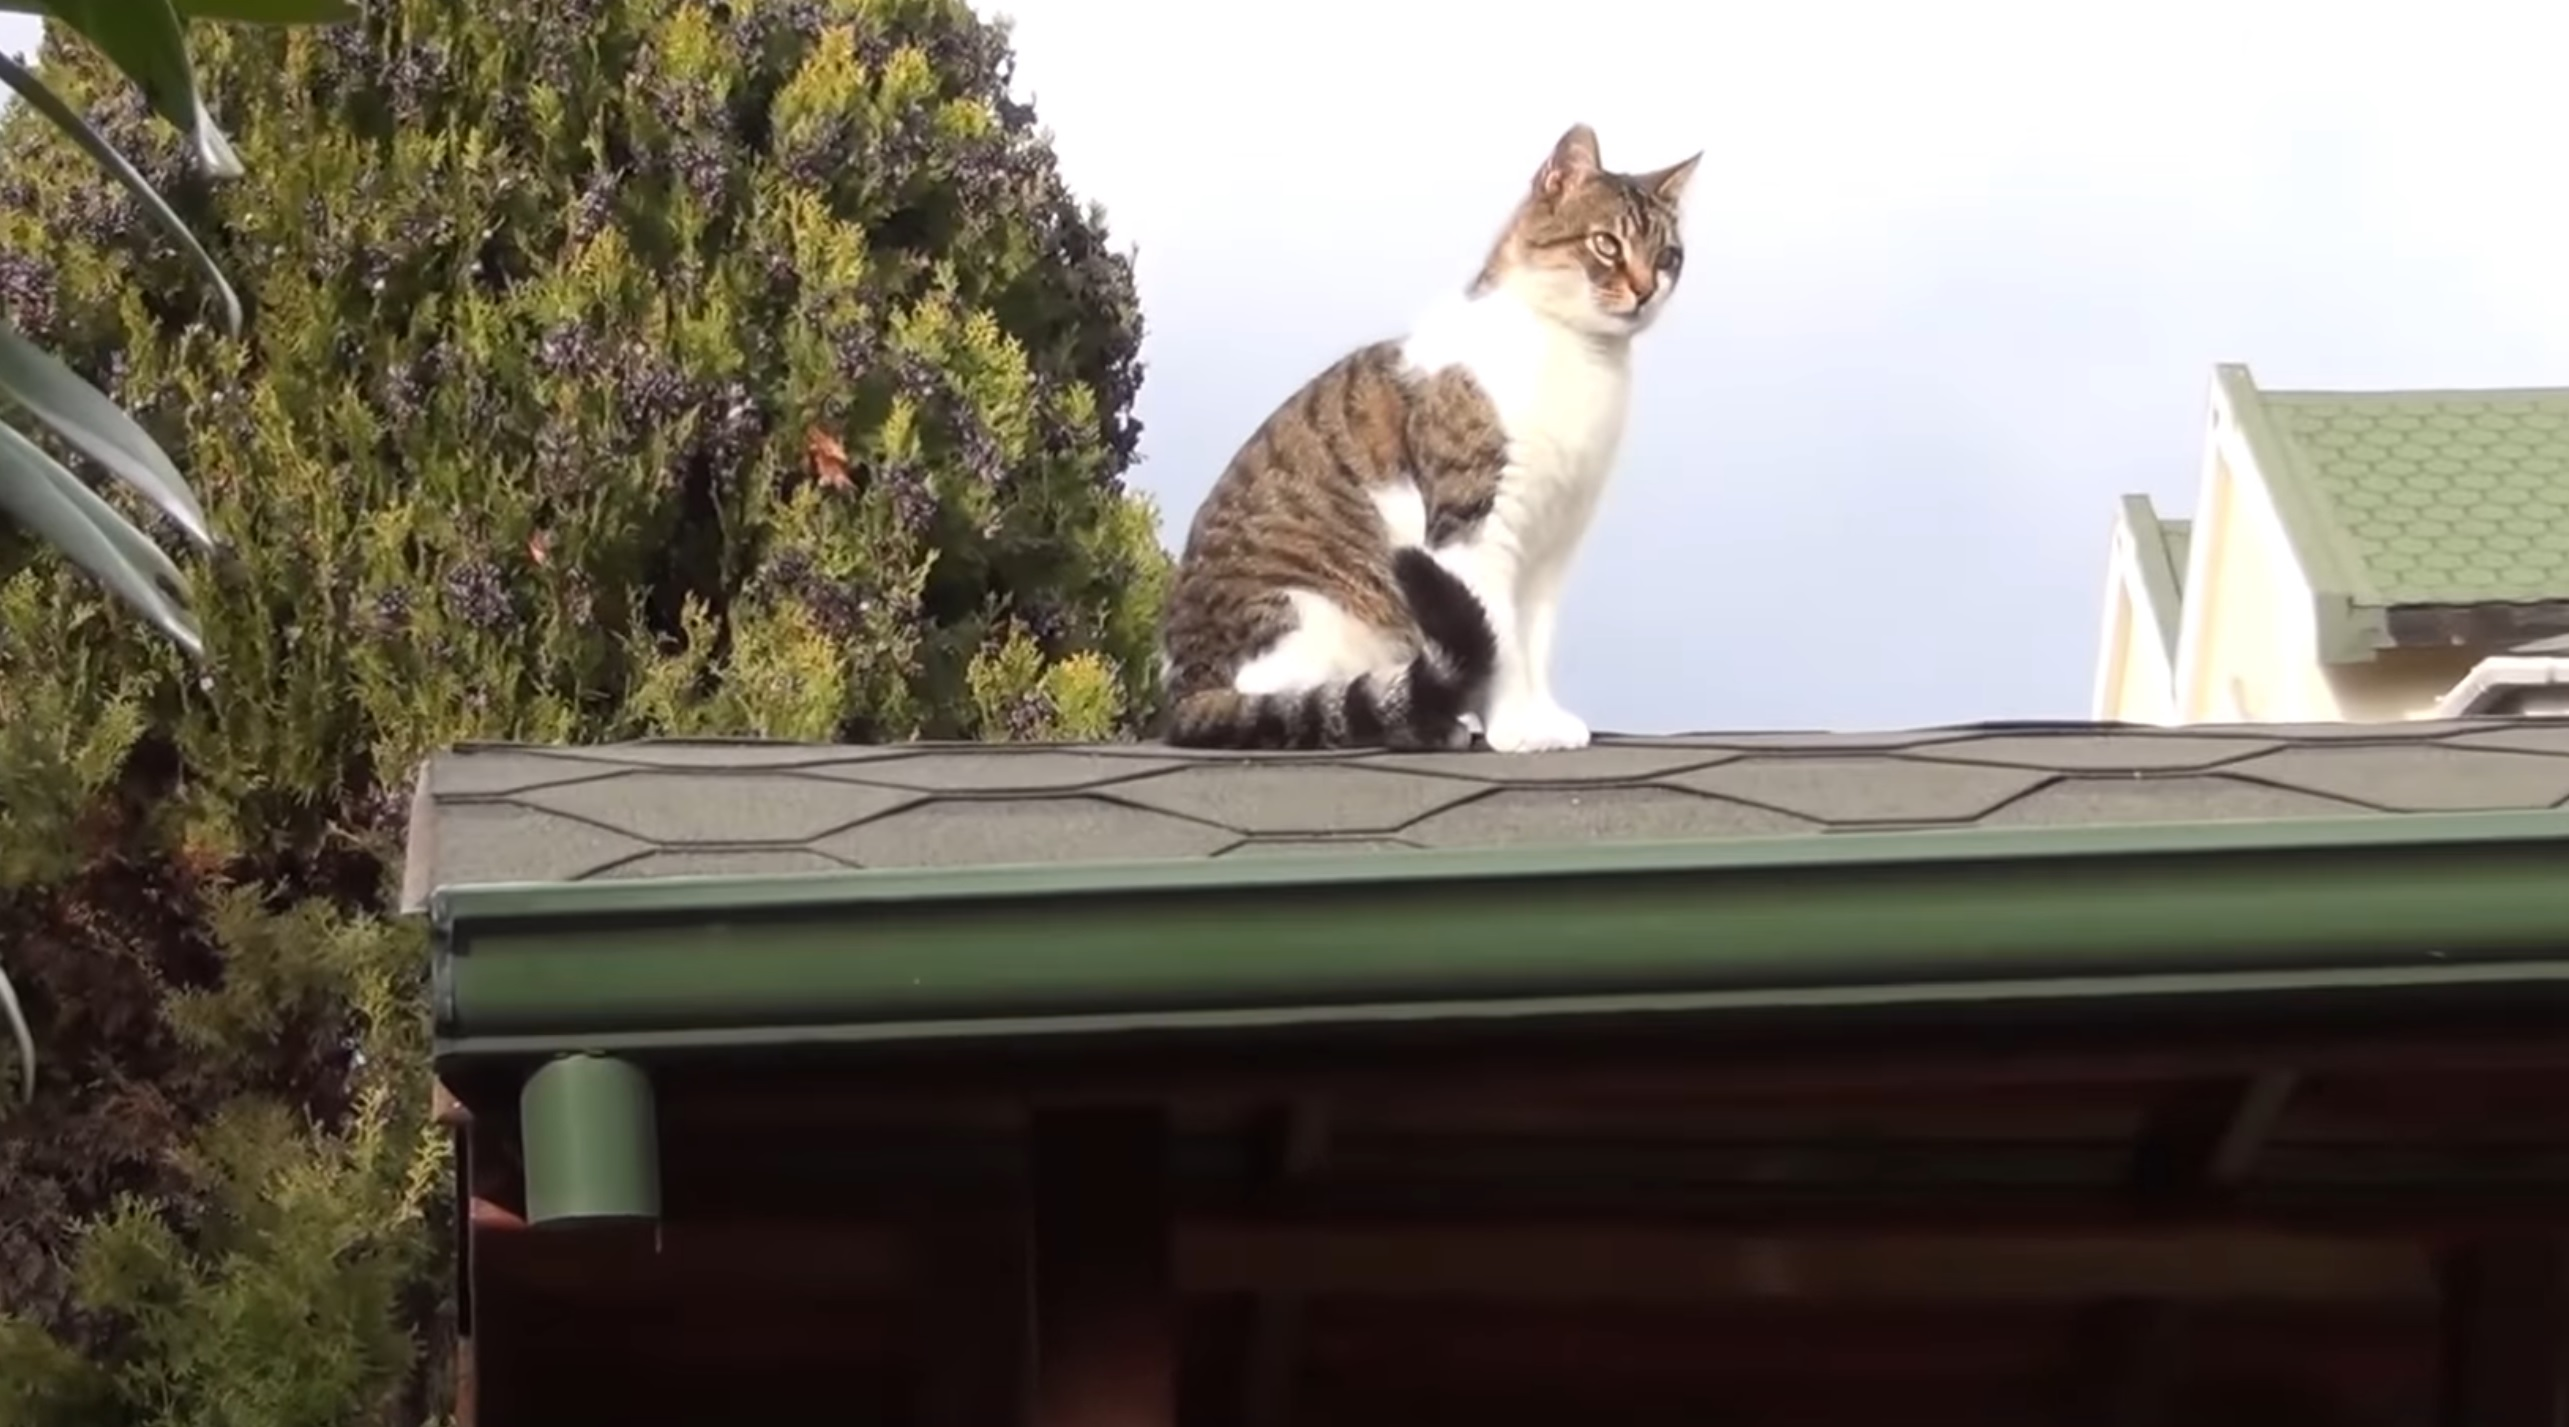 The Rooftop Kitty